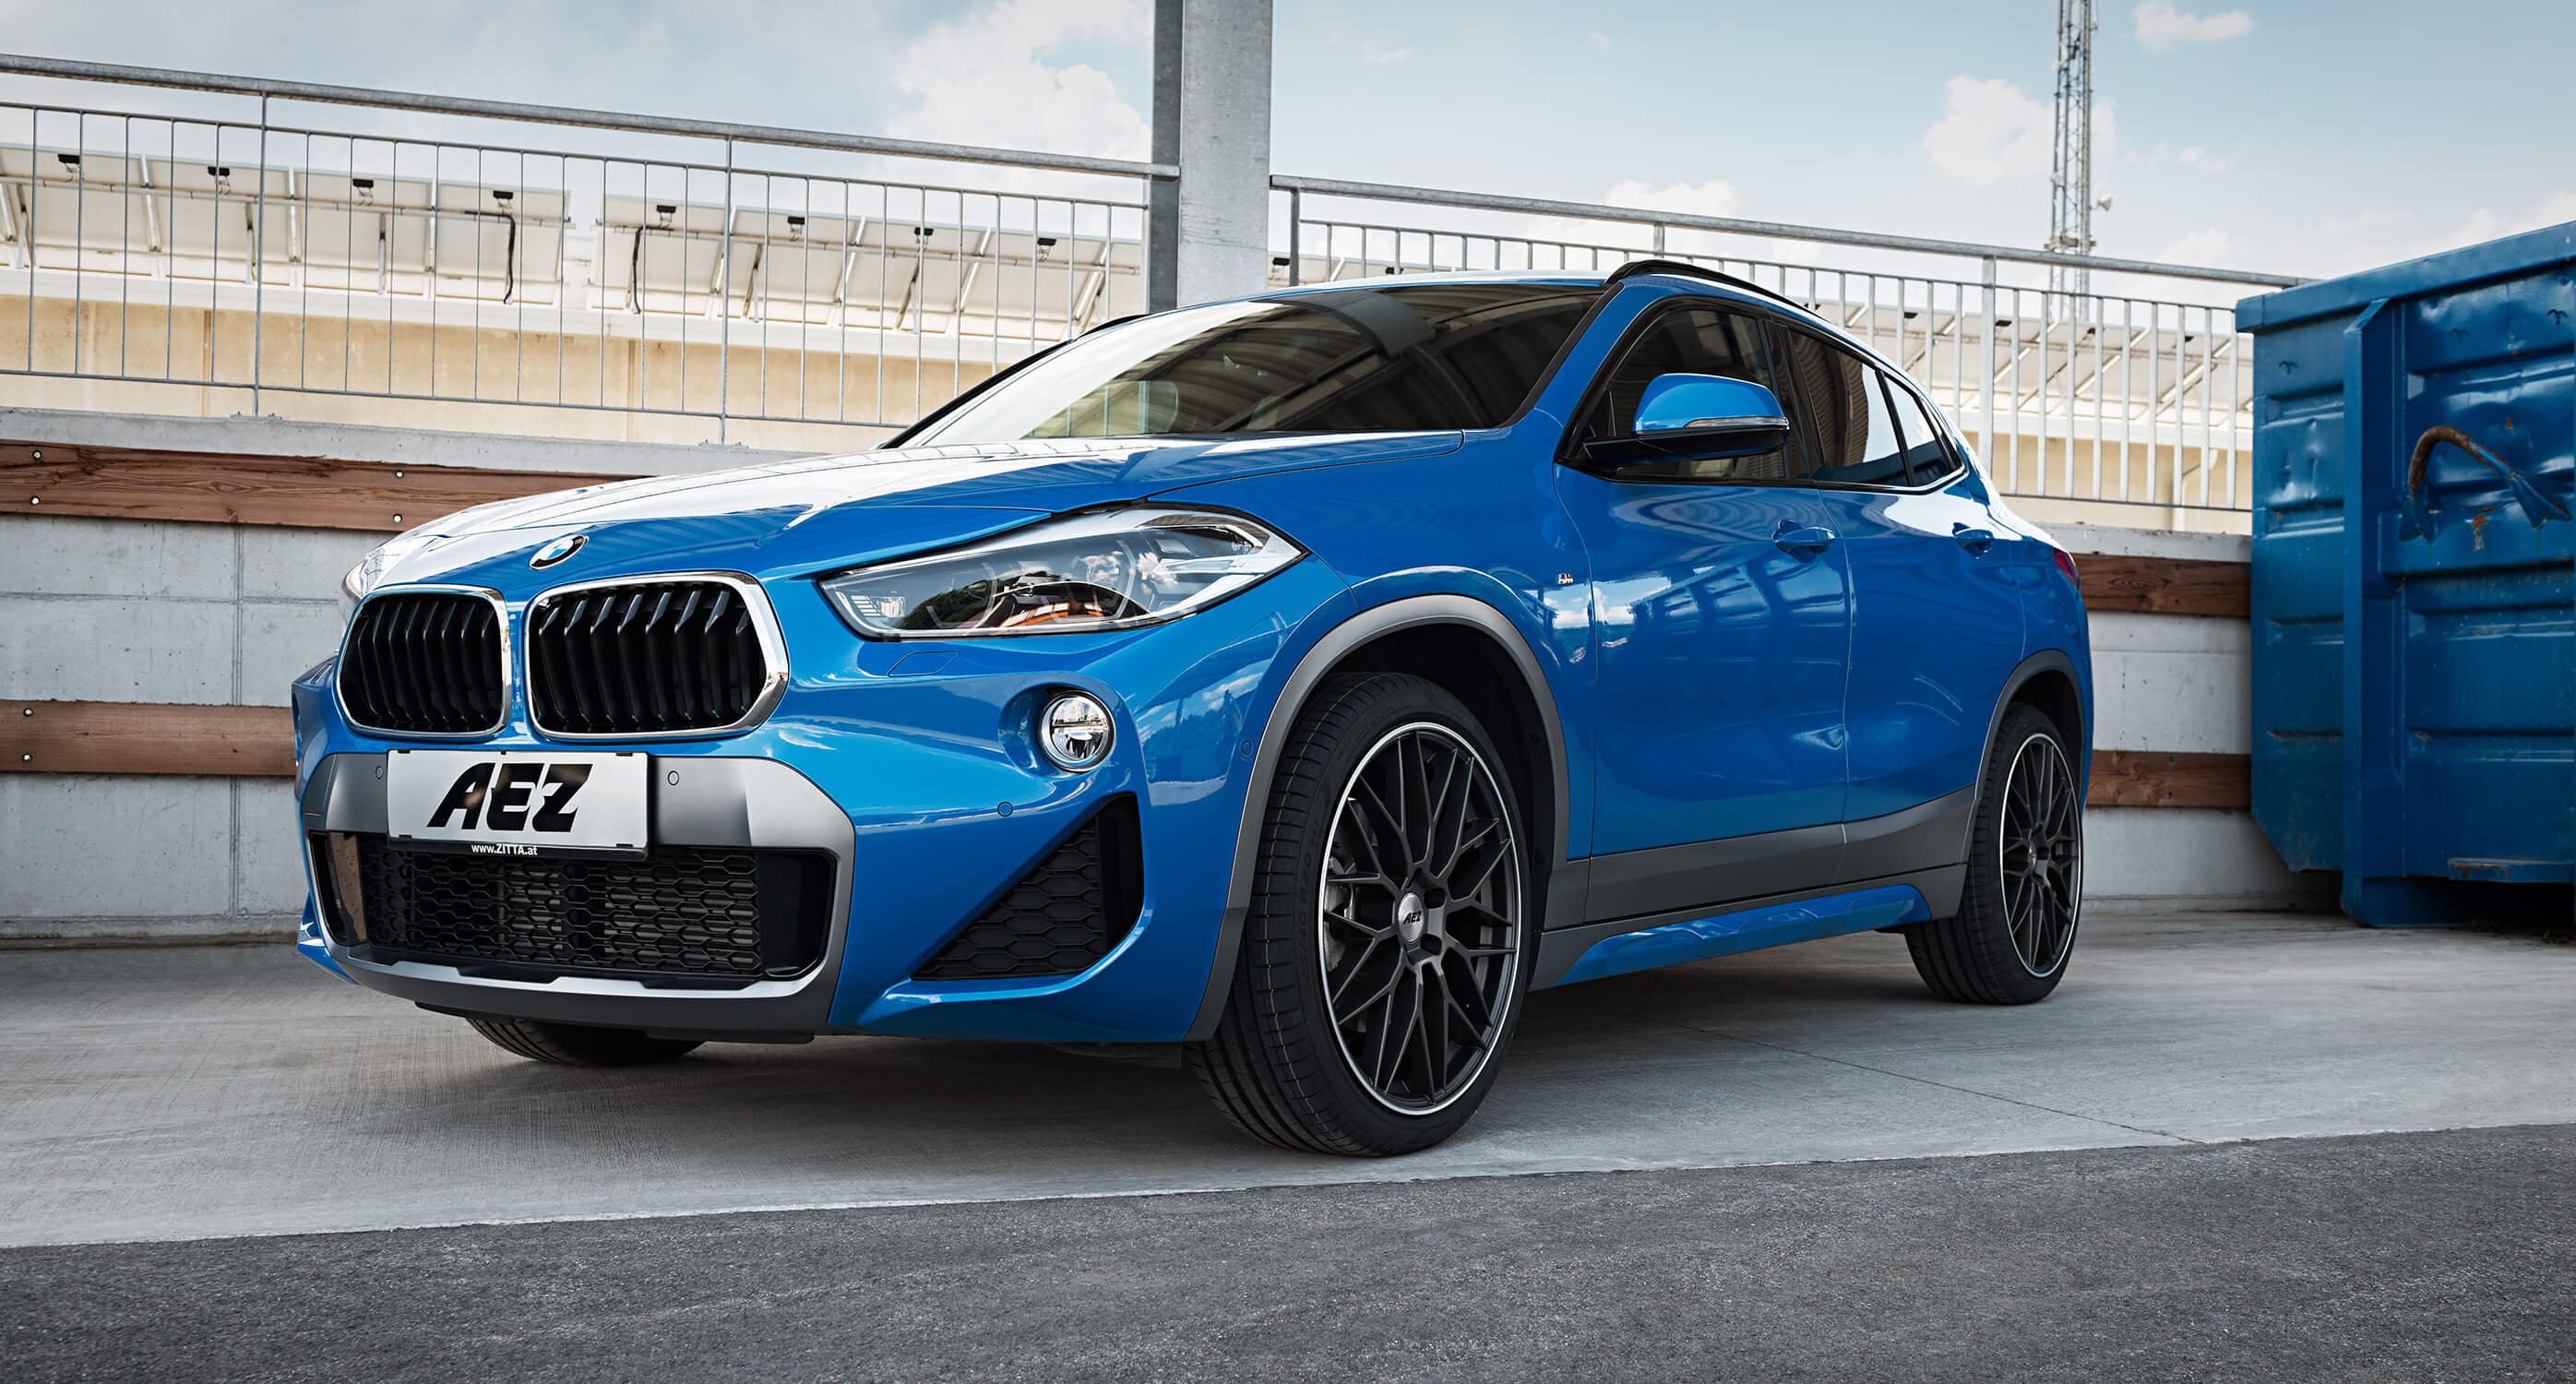 The new BMW X2 on AEZ Crest dark